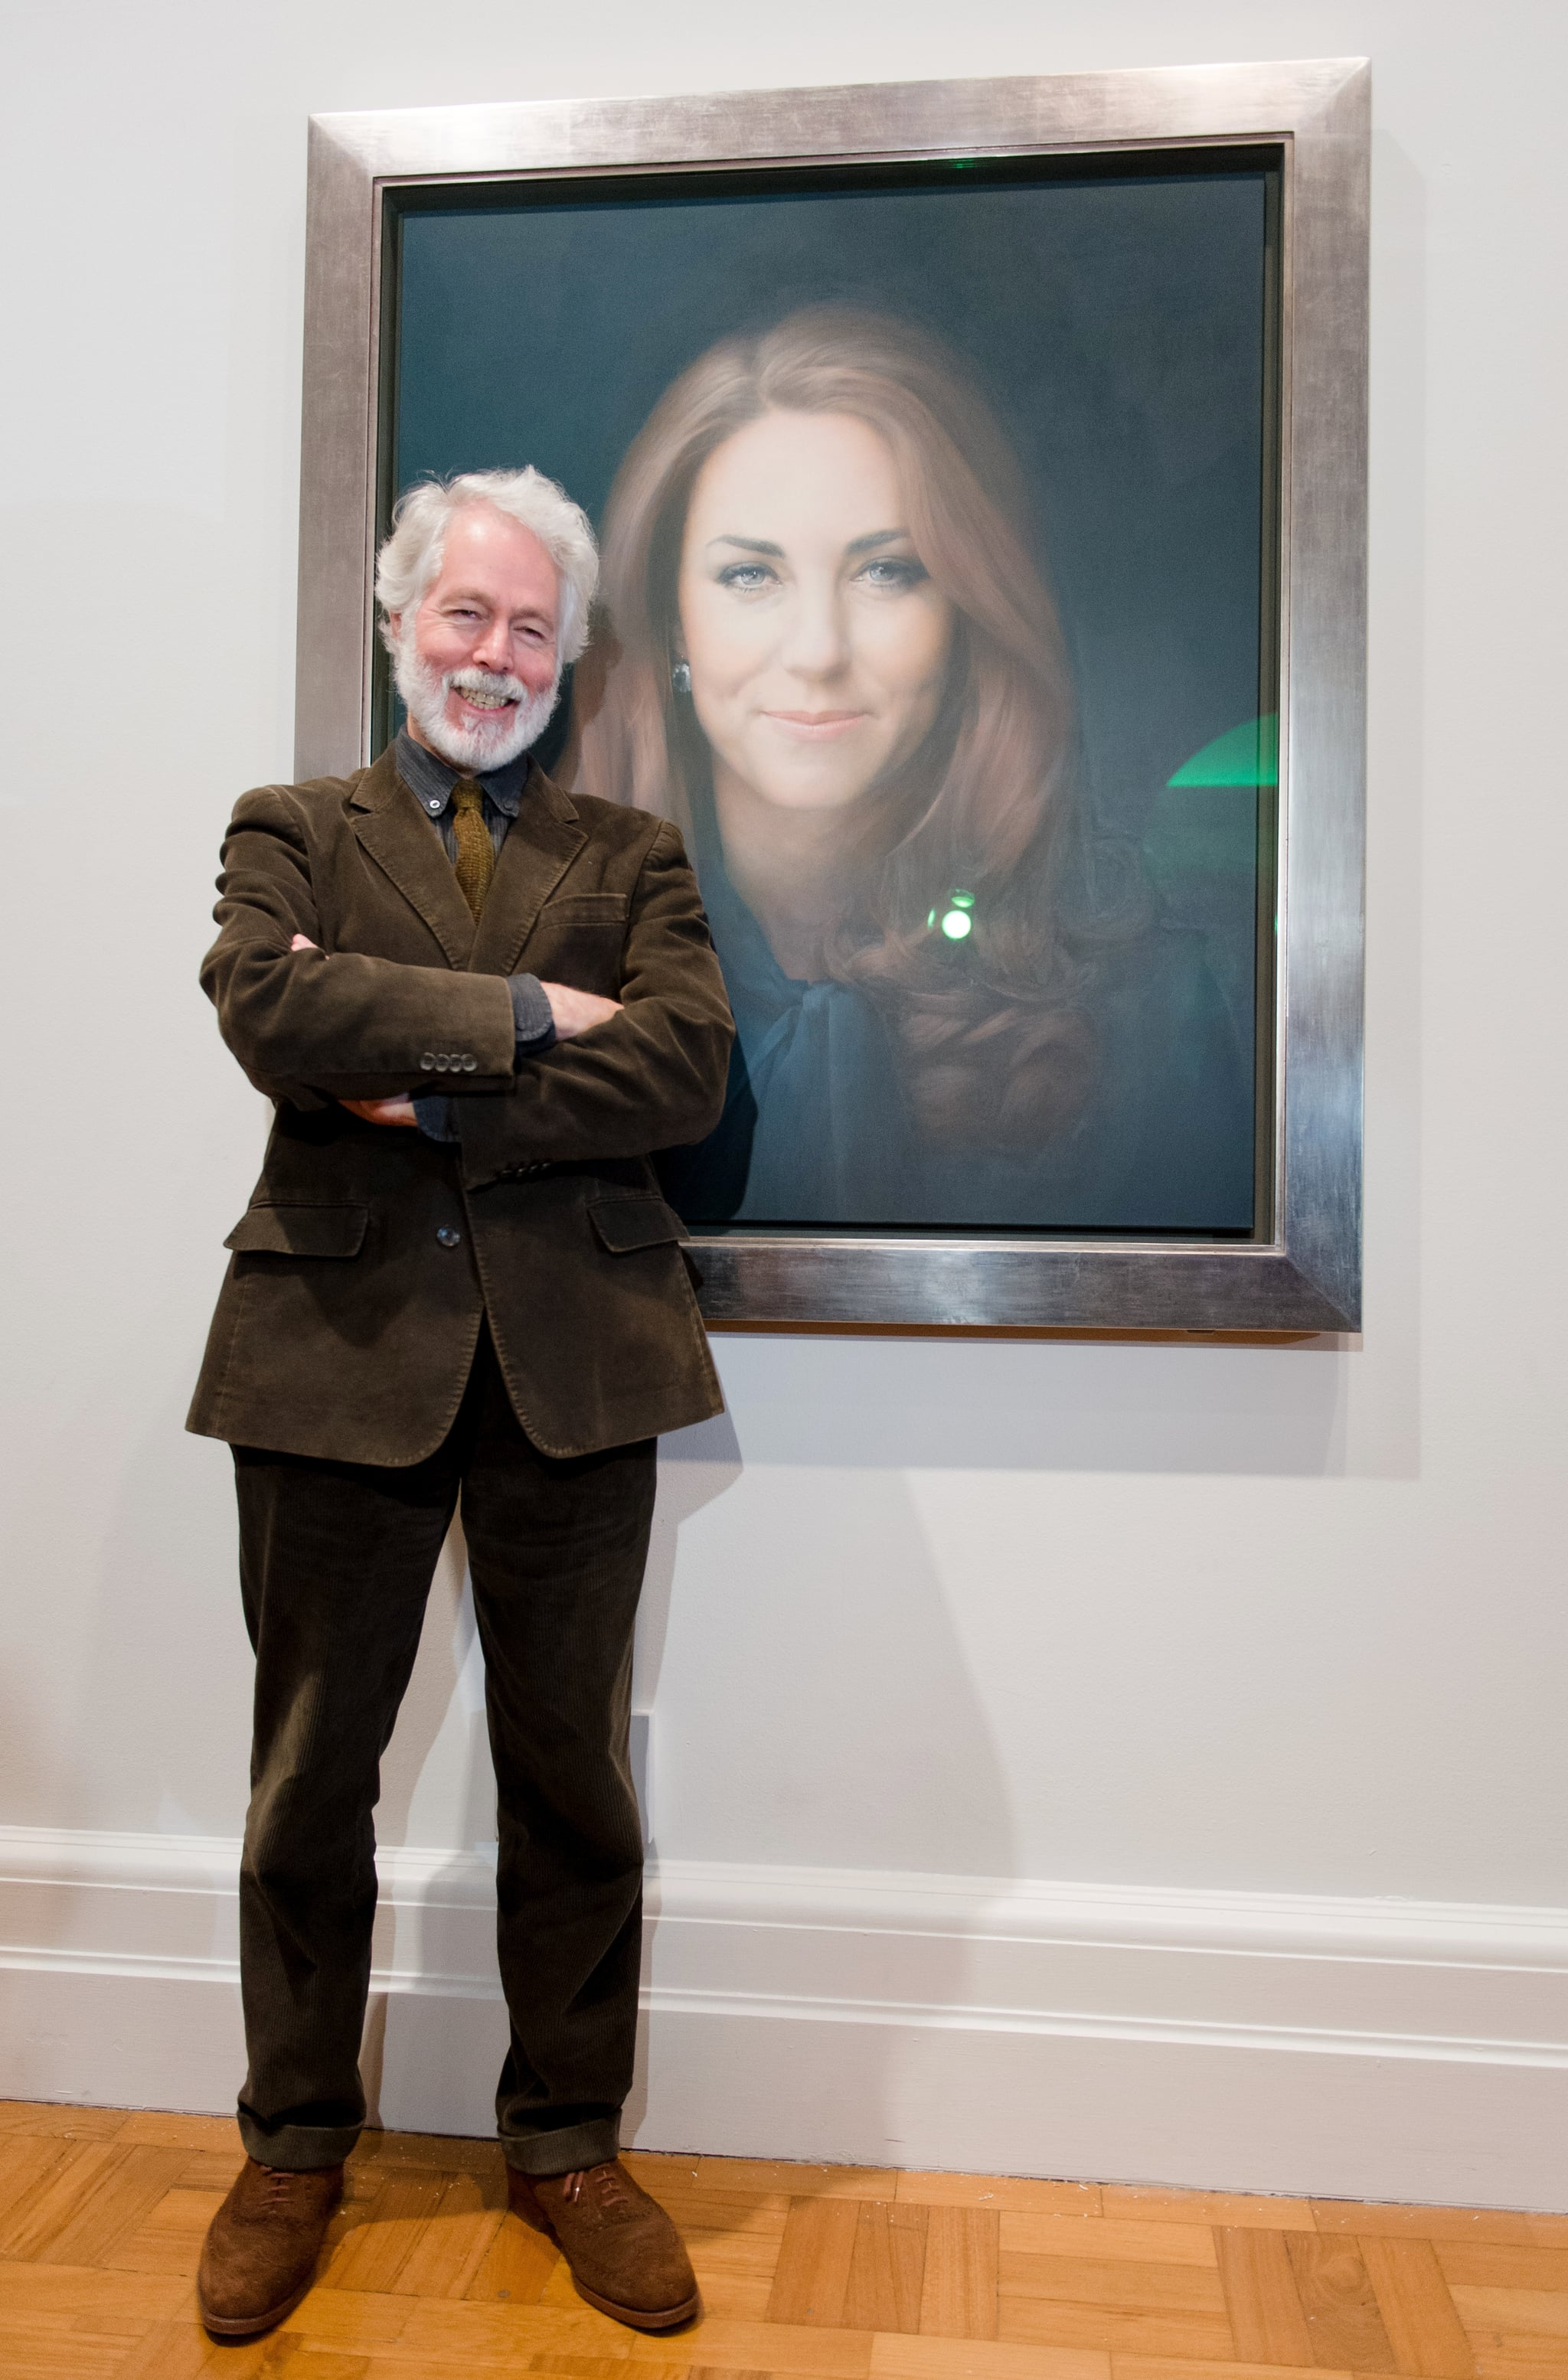 At the National Portrait Gallery, artist Paul Emsley unveiled a commissioned portrait of Kate, which was widely criticized.